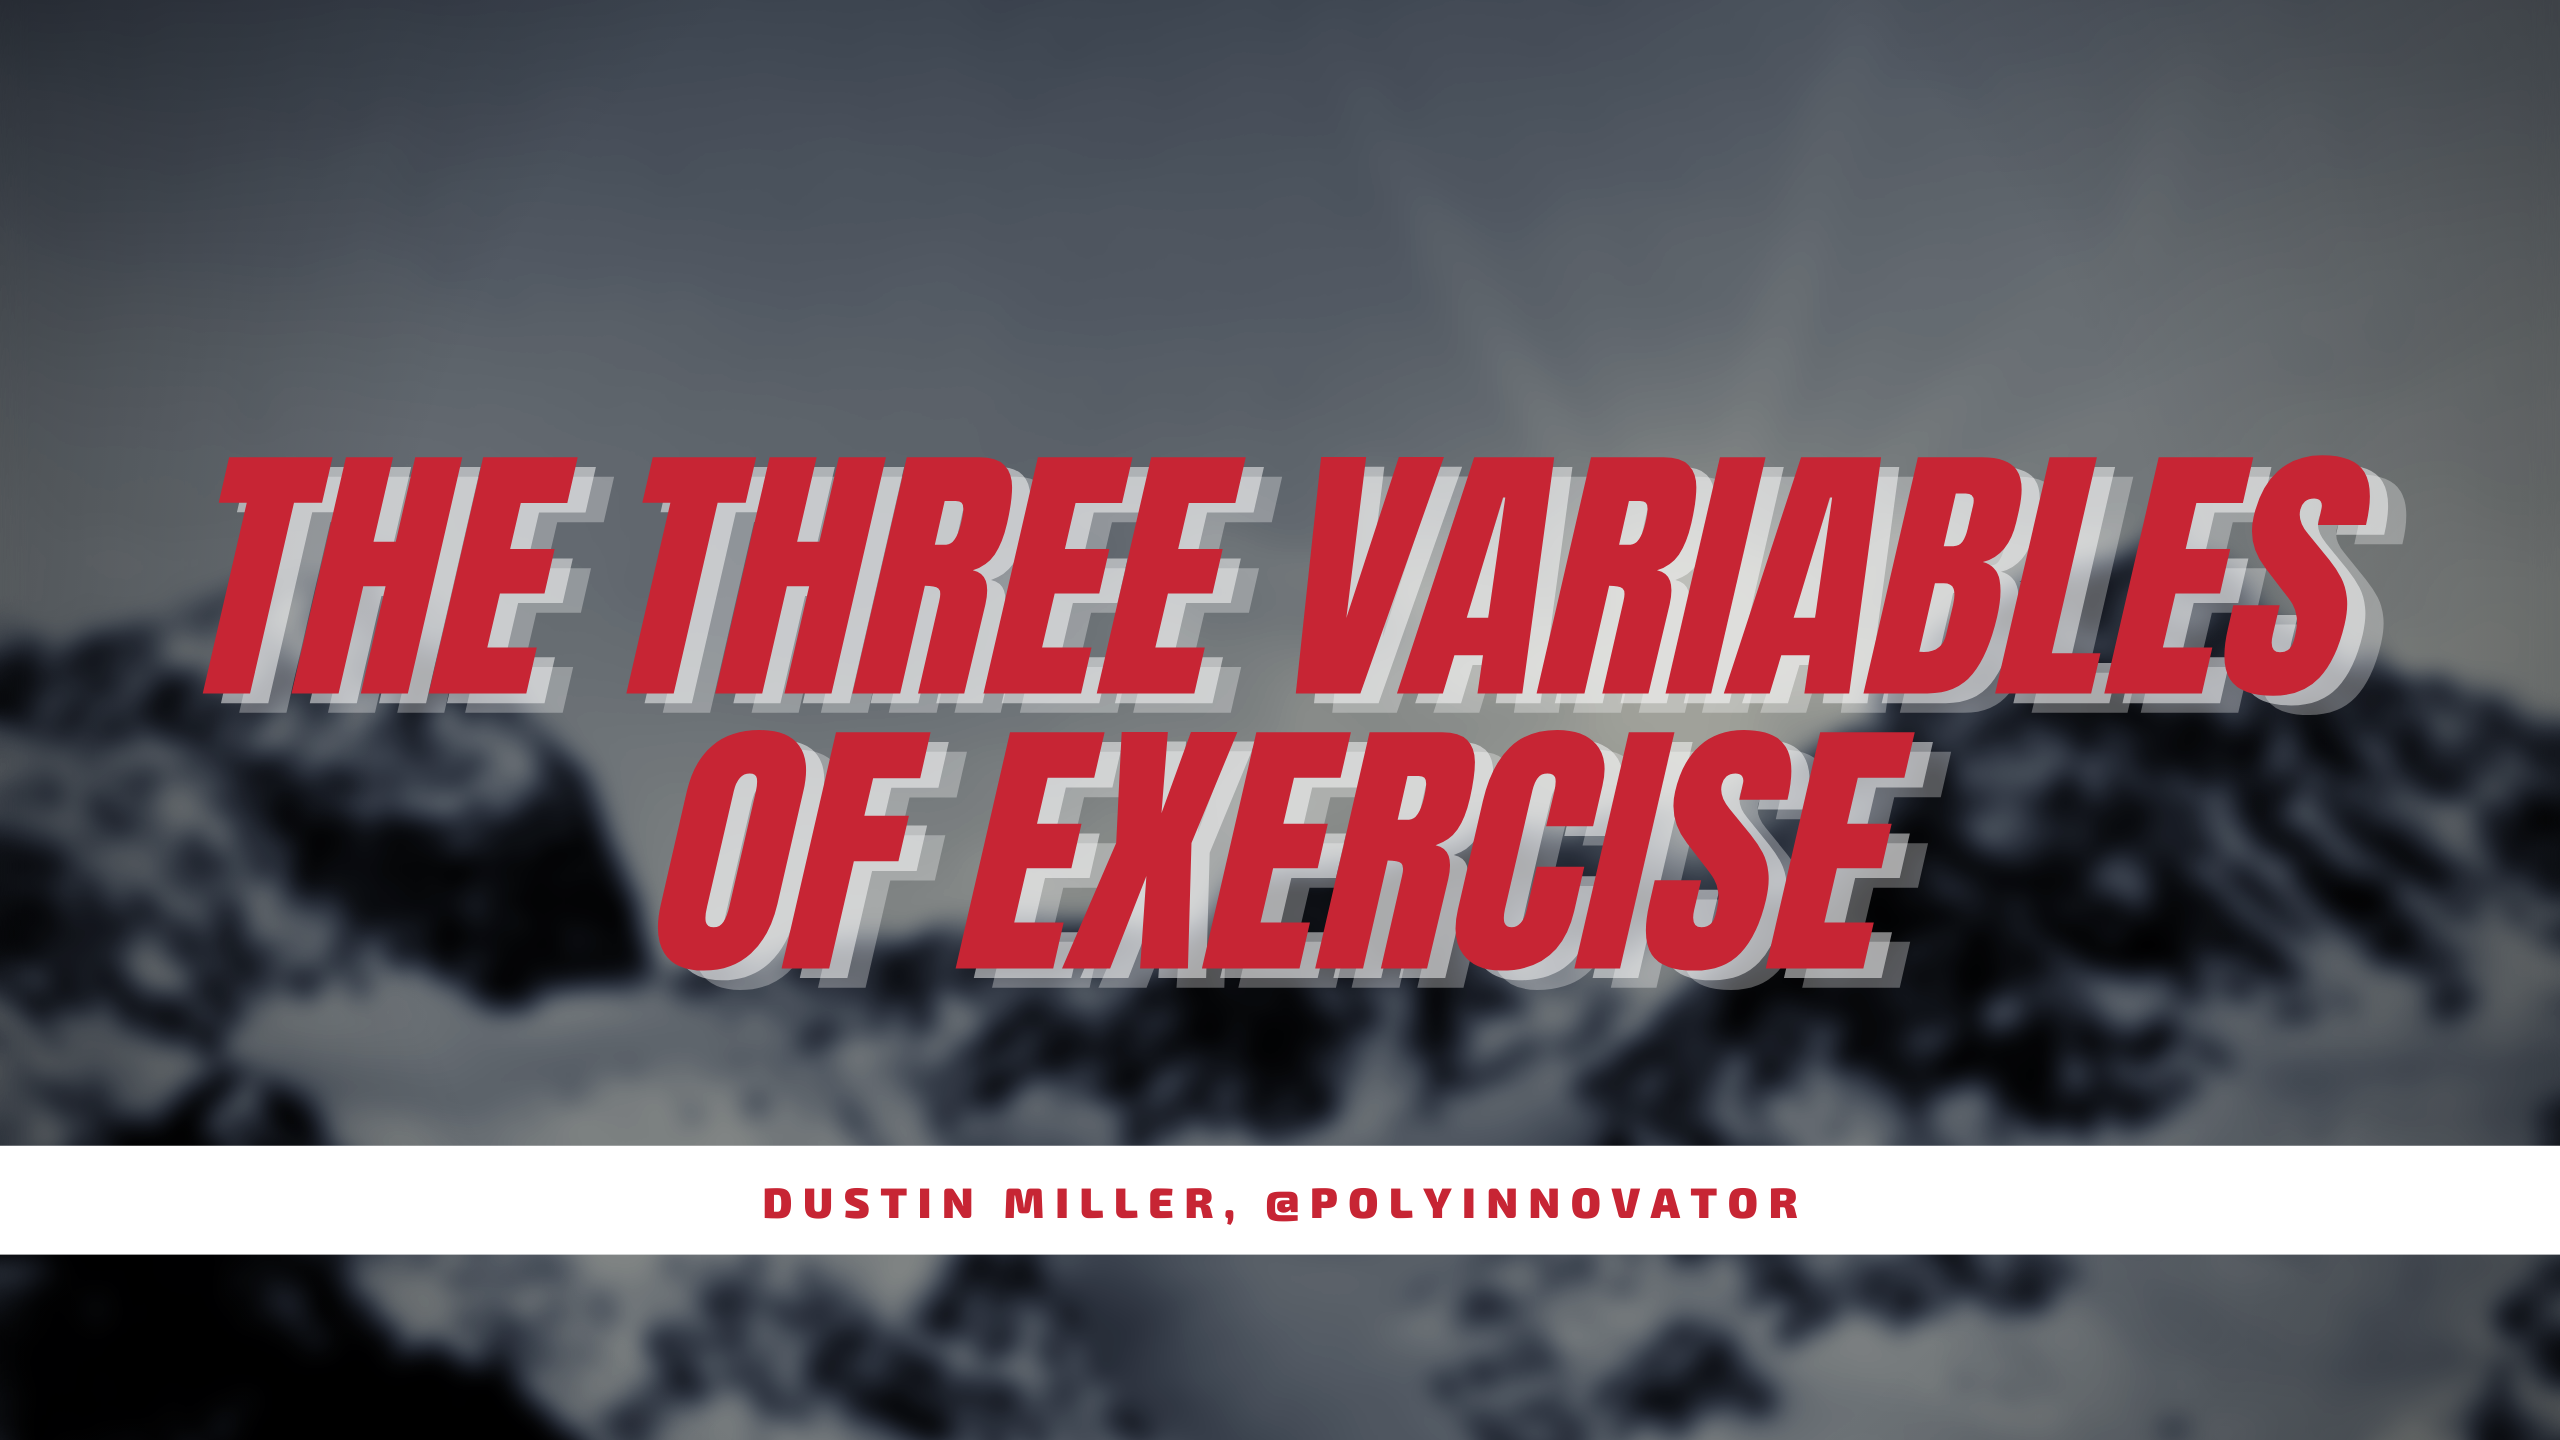 The Three Variables of Exercise